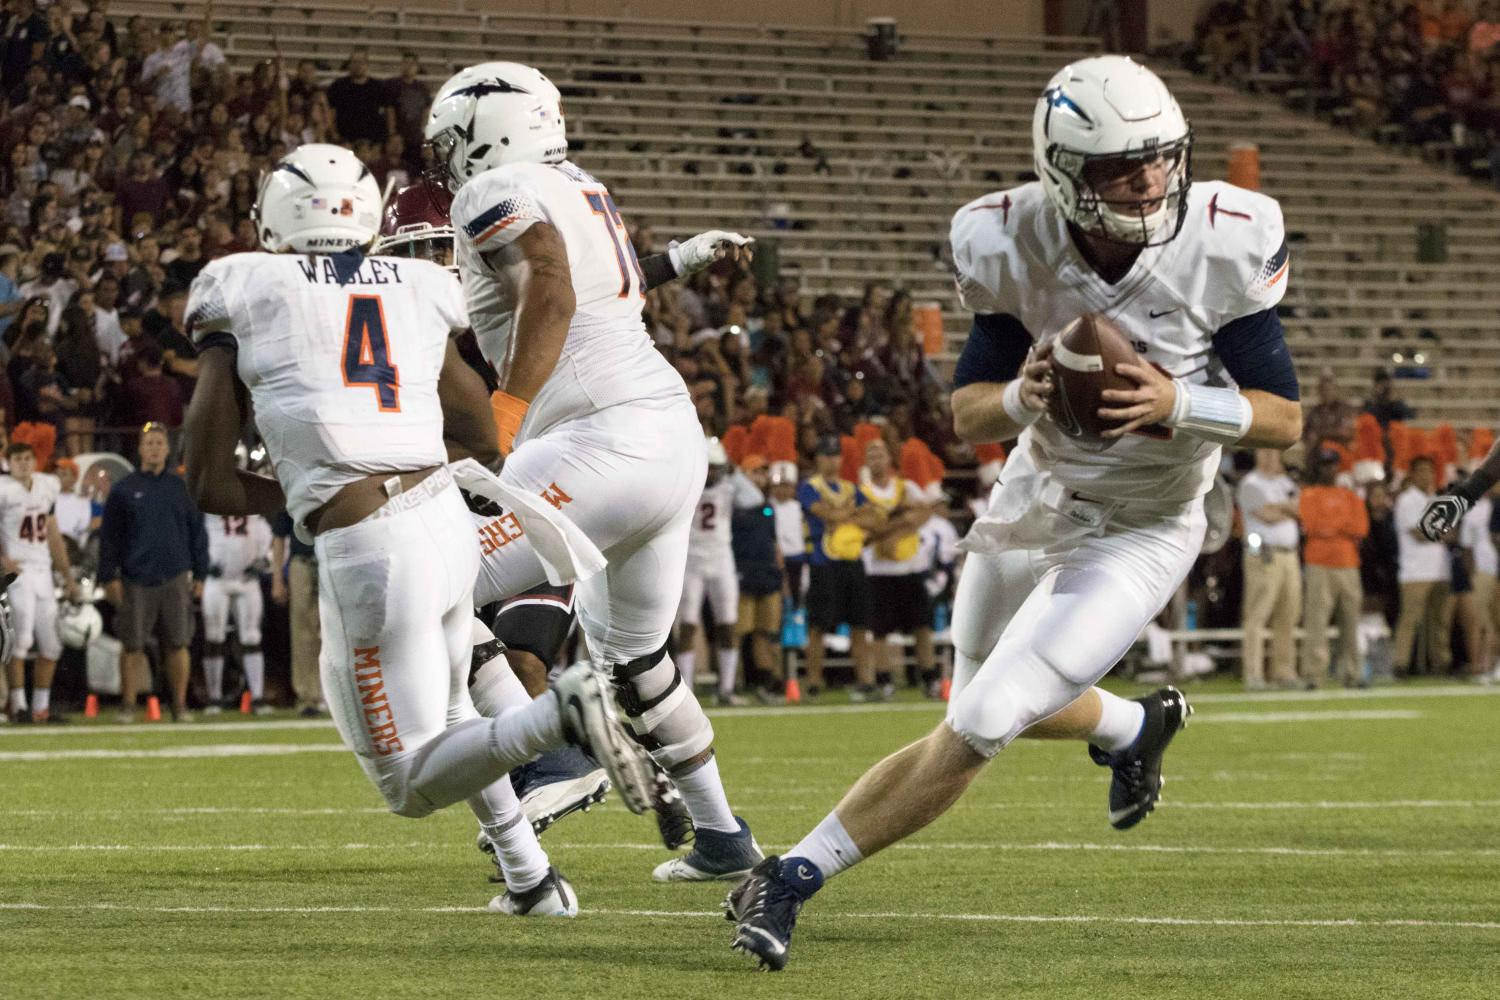 The UTEP football team travels to West Point this weekend to face Army.